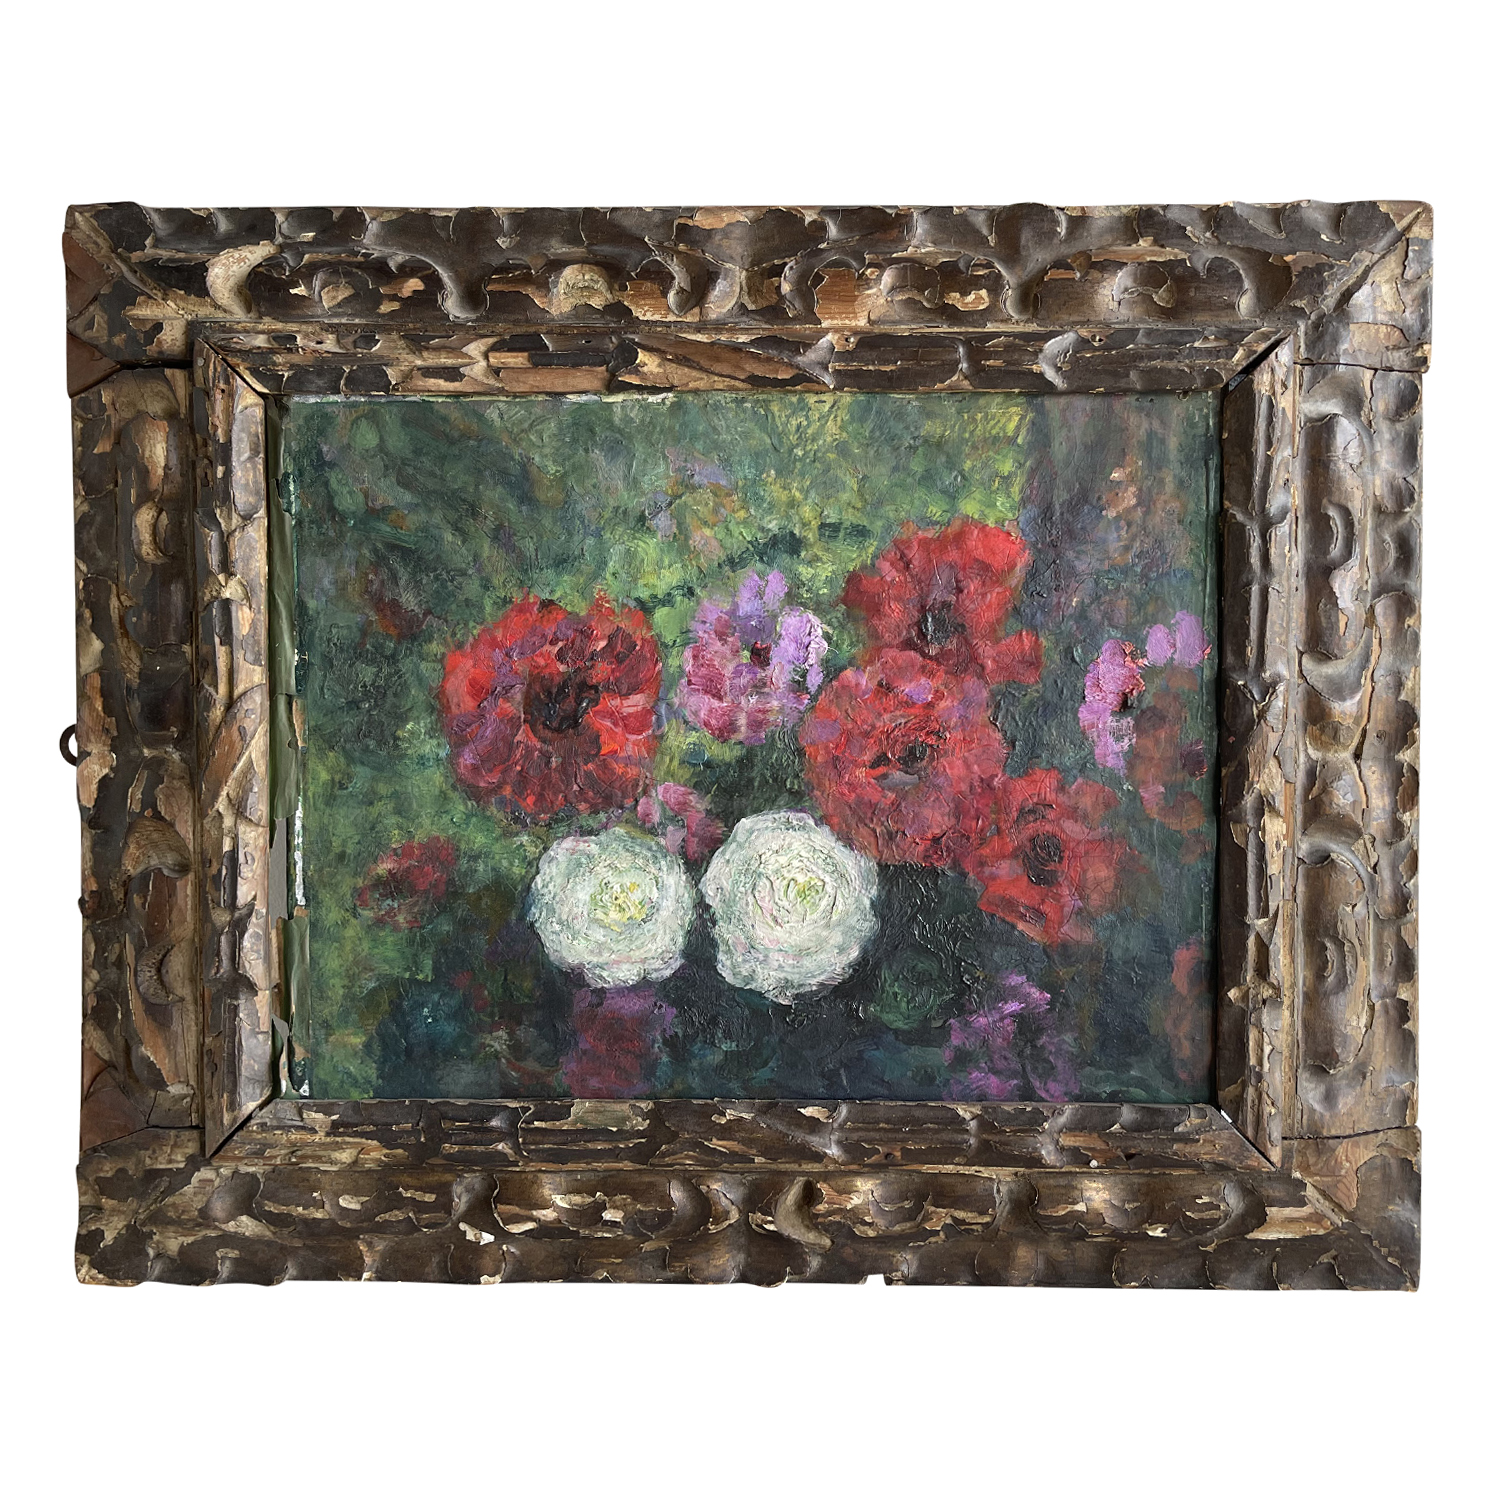 20th Century French Red, Pink & White Flowers Oil Painting by Victor Charreton